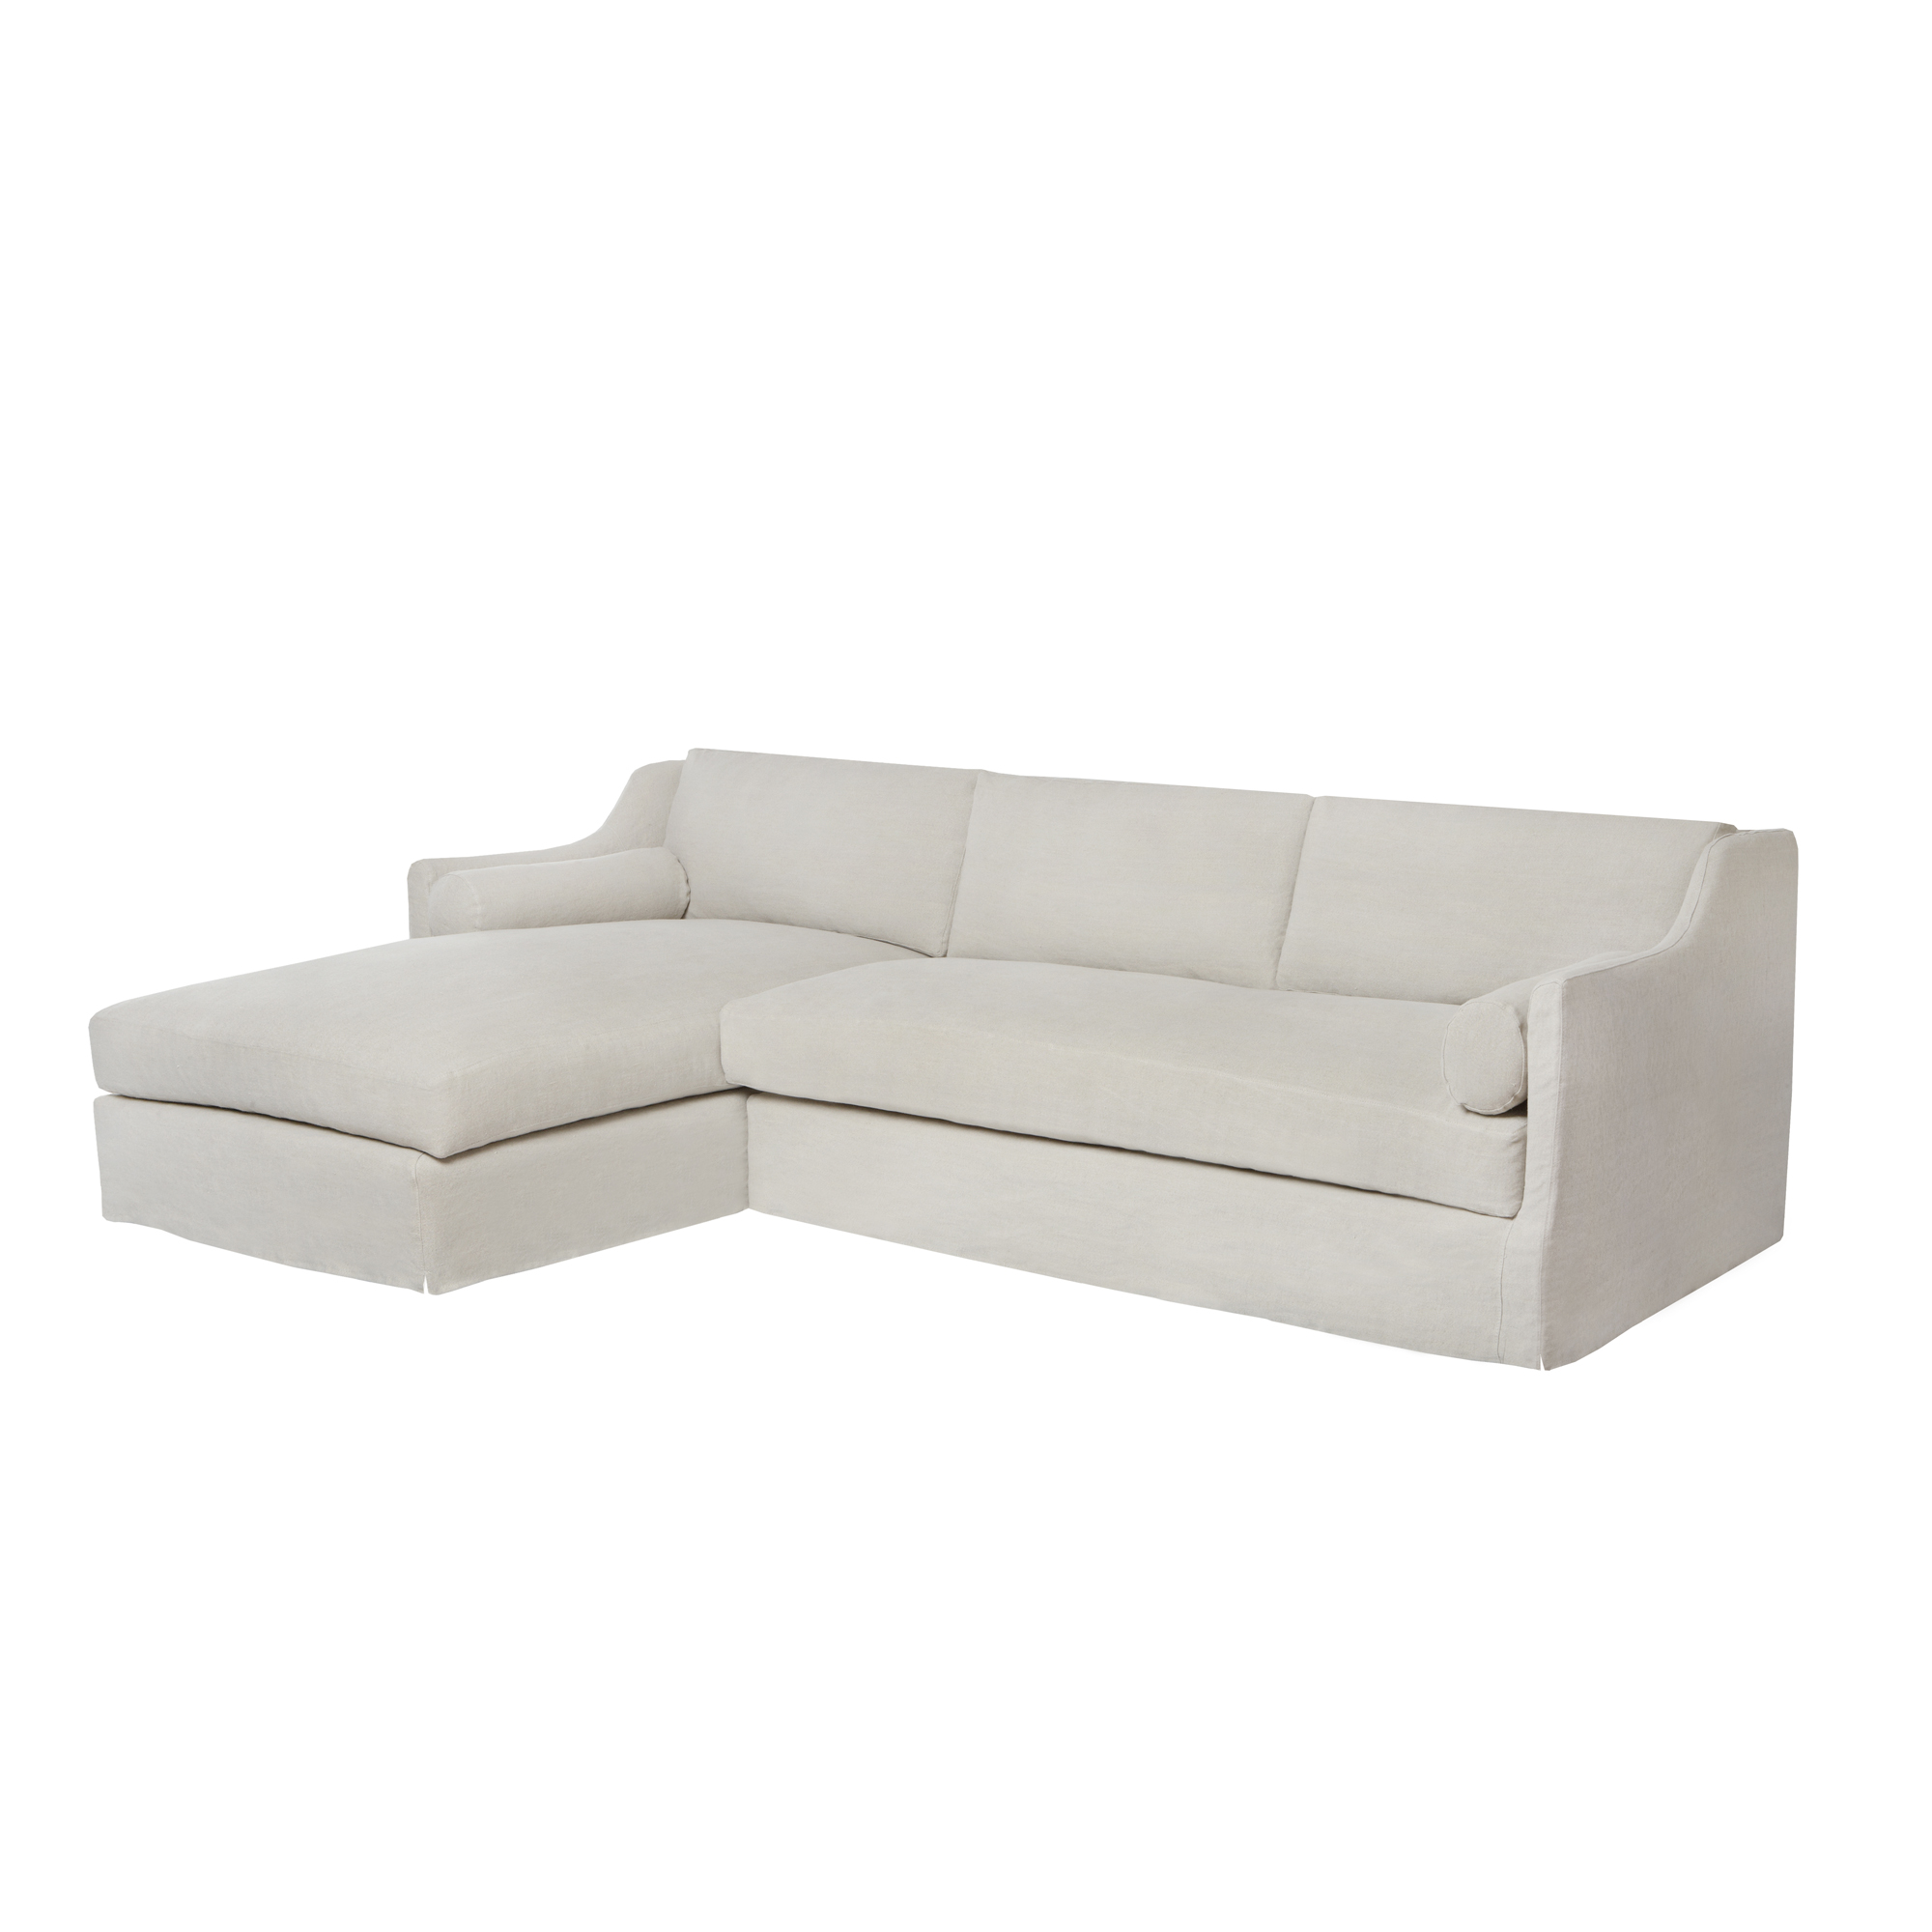 Dalia_2-piece_Sectional_Cisco_Brothers.jpg